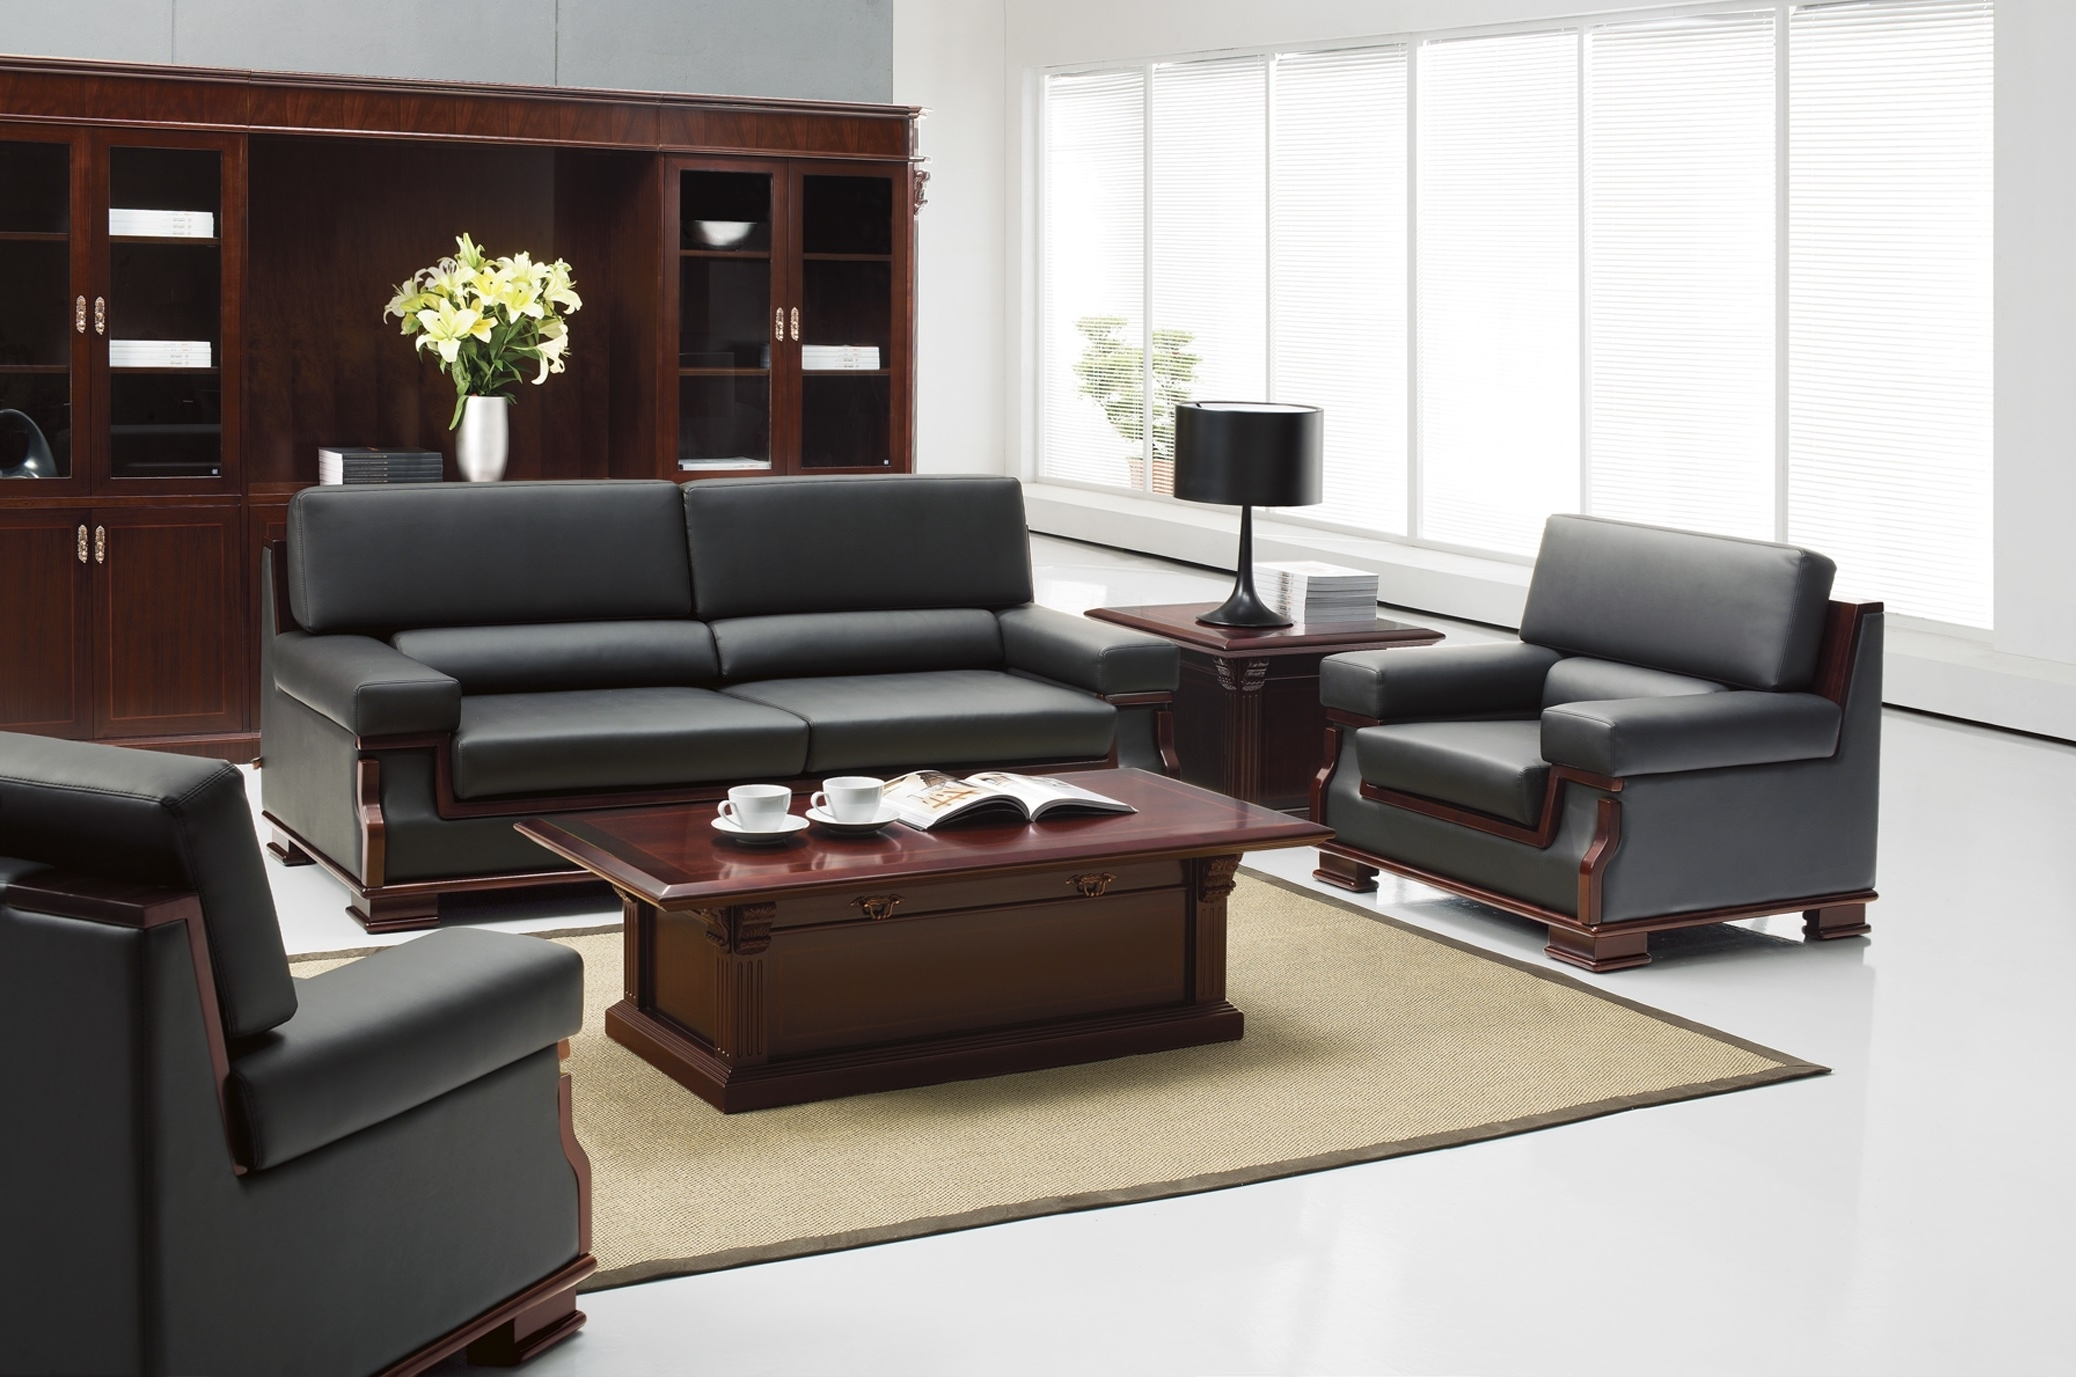 Contemporary Office Sofas Intended For Most Recent Office Sofas And Chairs (View 5 of 15)